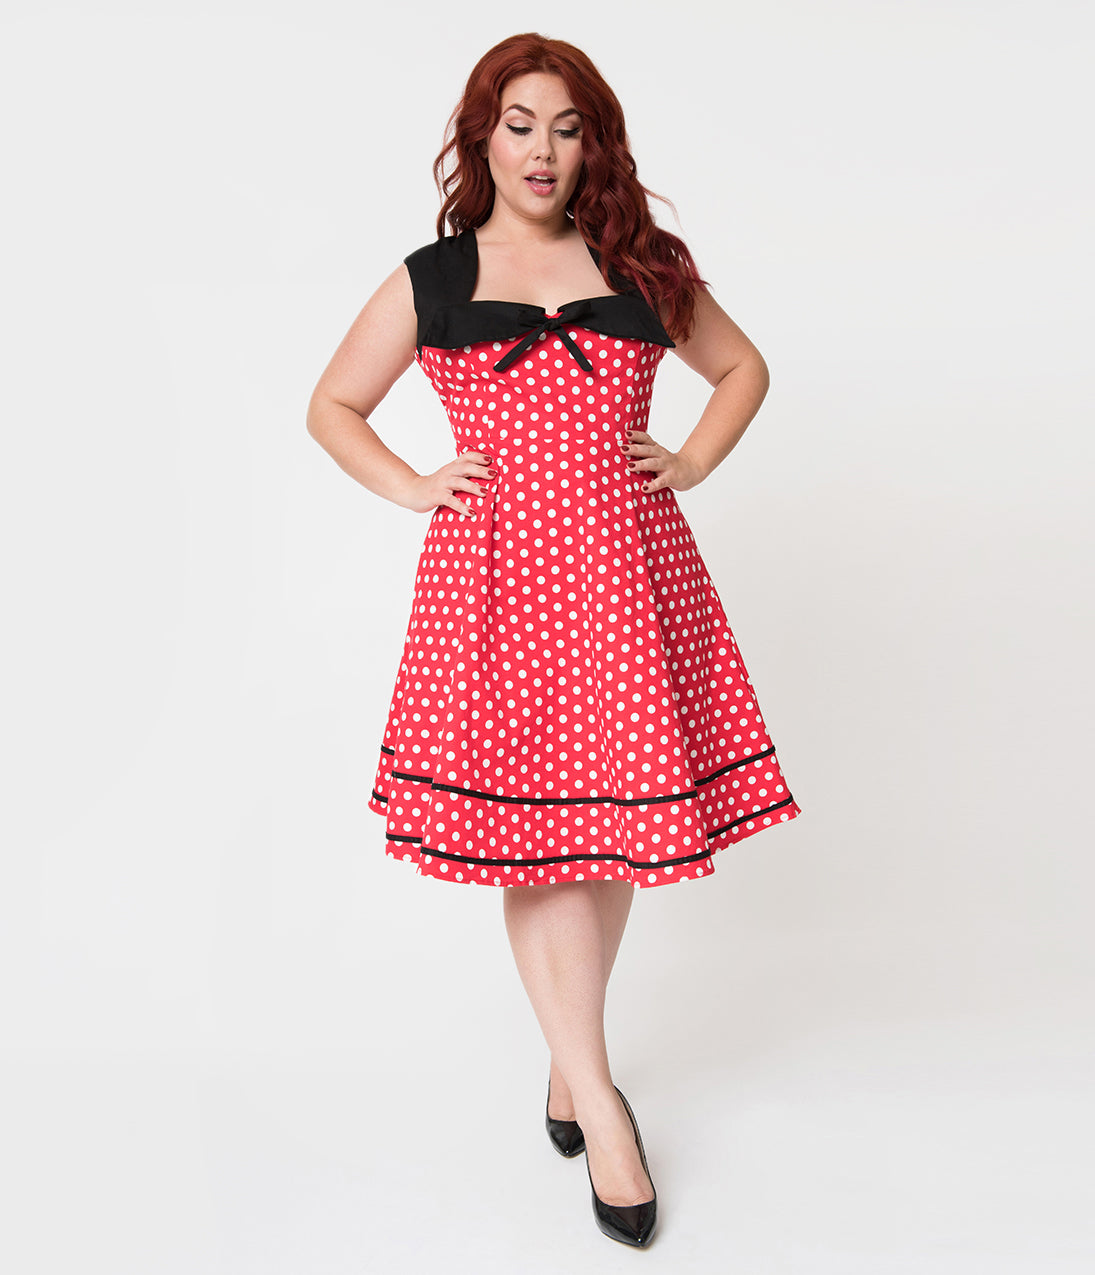 Plus Size Polka Dot Dresses – Vintage 40s, 50s, 60s Dresses Plus Size Vintage Style Red  White Polka Dot Cotton Flare Dress $58.00 AT vintagedancer.com